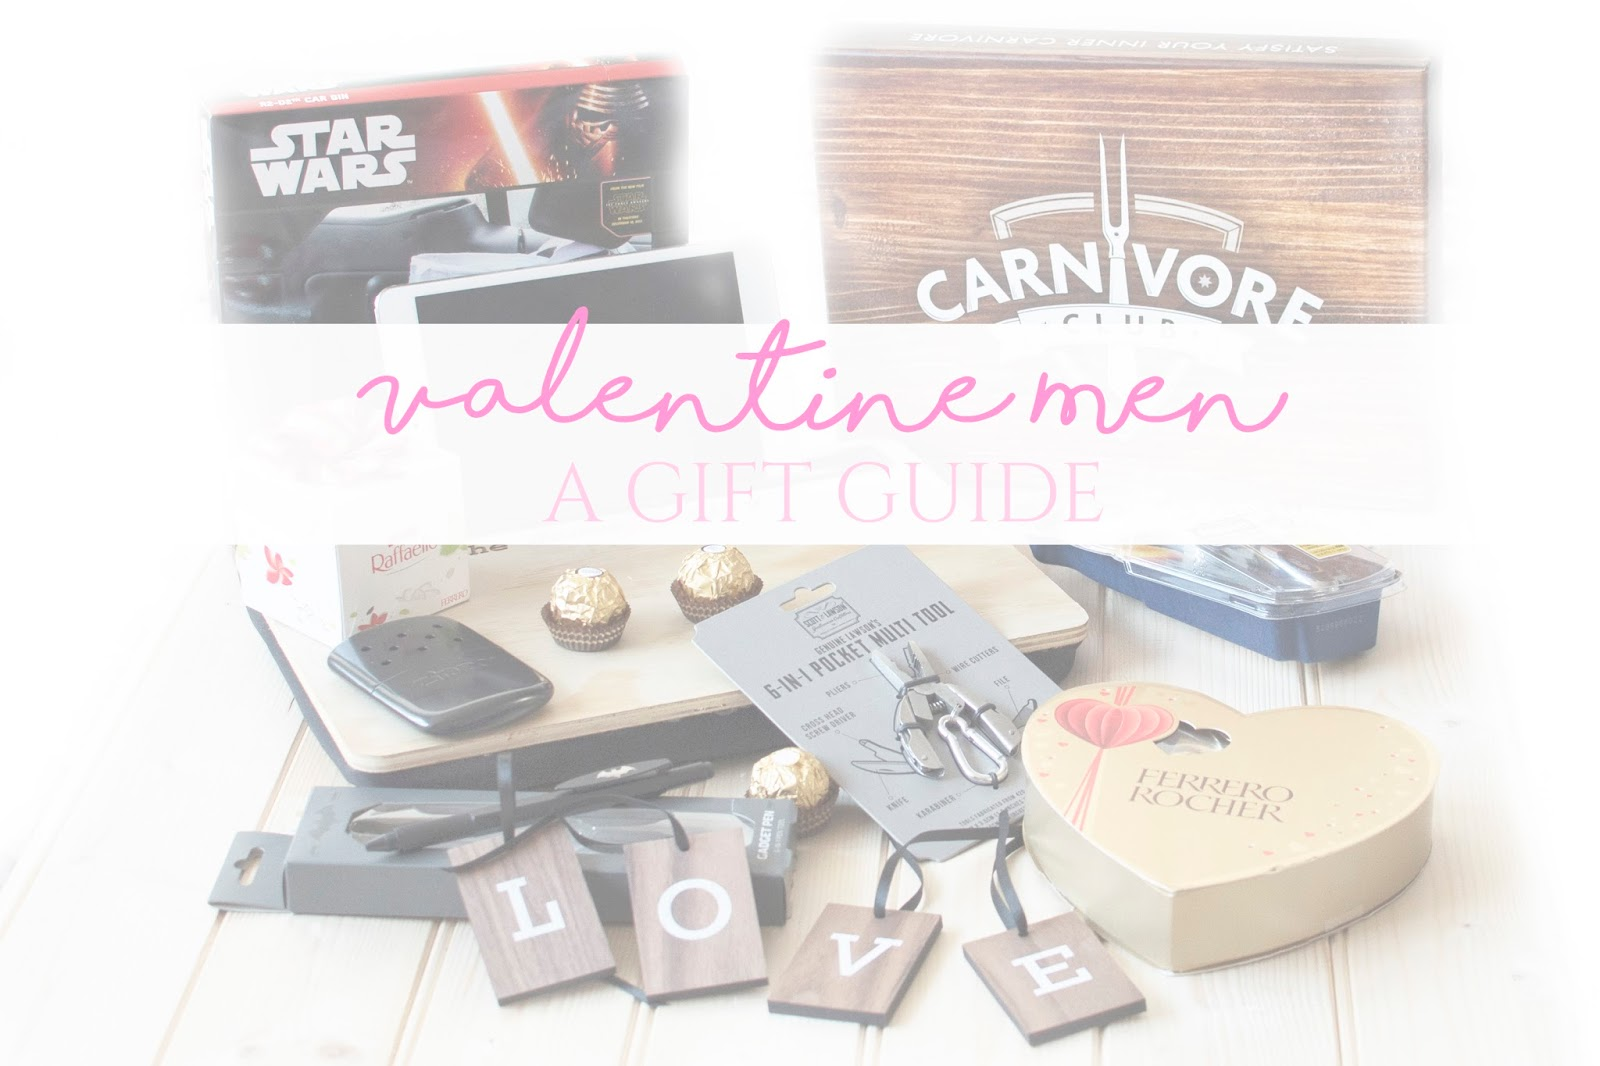 VALENTINE MEN: A GIFT GUIDE [2016]